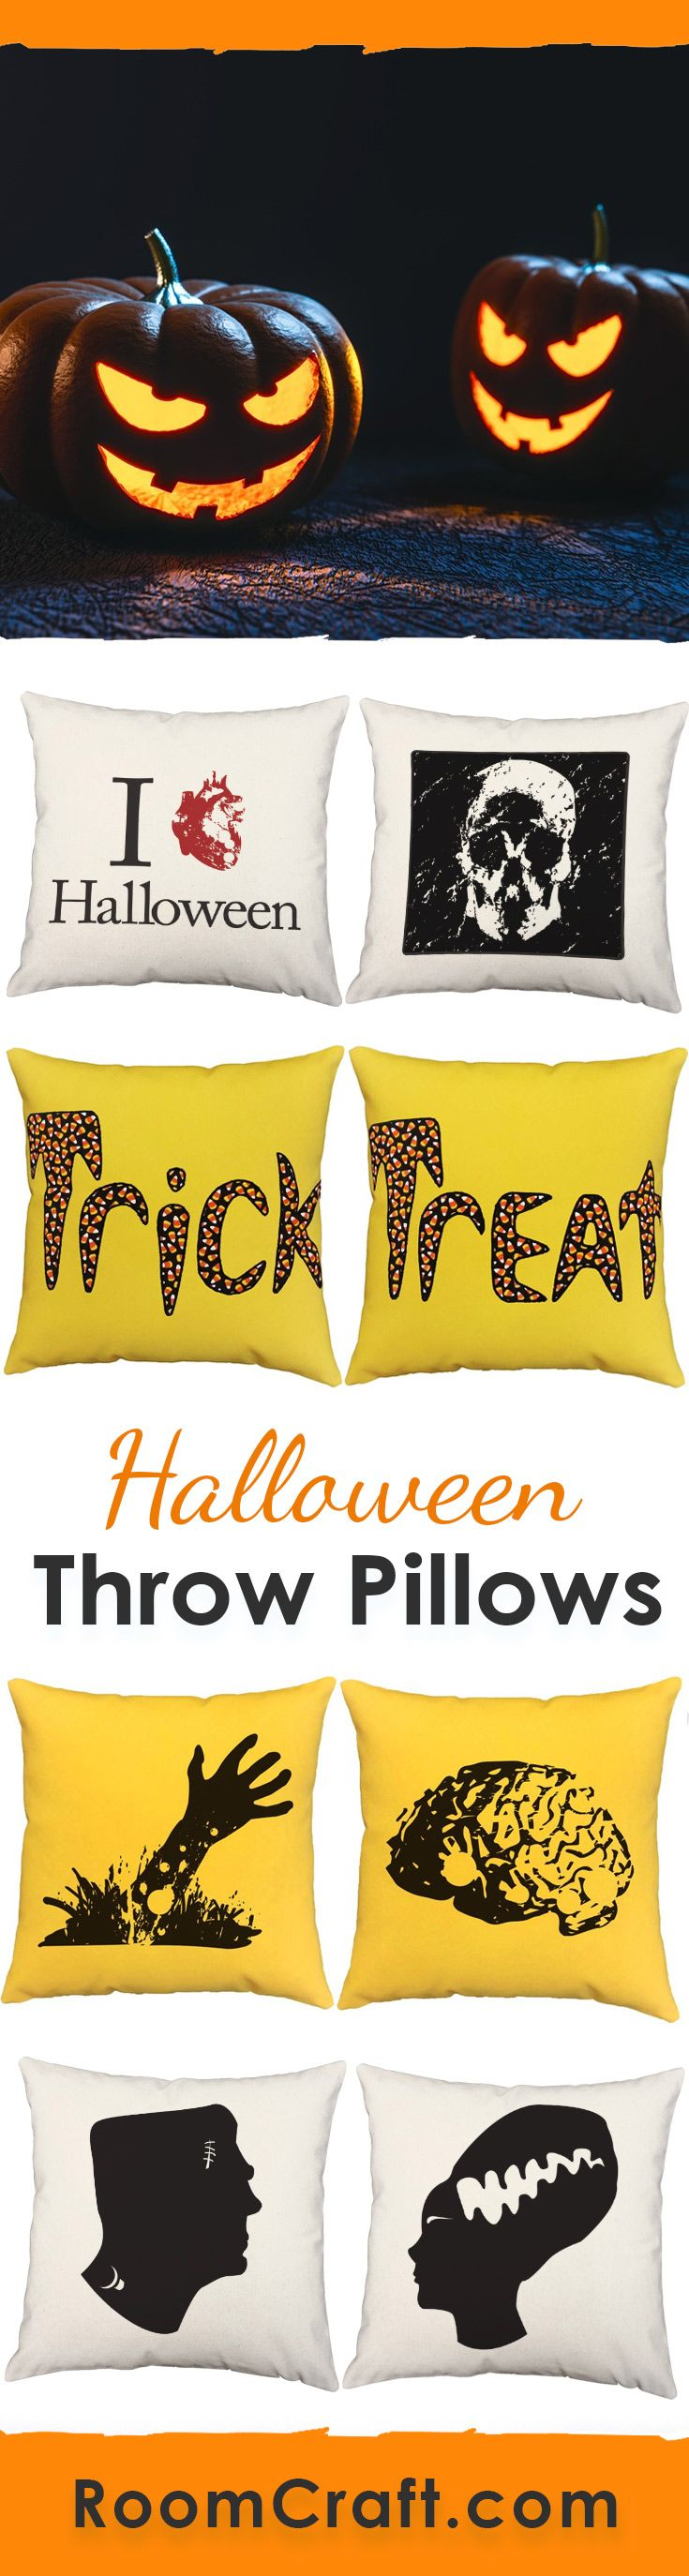 Whether you love gore or ghouls, these spooky throw pillows will scare the pants off of you. Perfect for Halloween and year round decorations. Each scary design is offered in multiple fabrics, colors, and sizes making them the perfect addition to your home, game room or man cave. Our quality Halloween pillow covers are made to order in the USA and feature 3 wooden buttons on the back for closure. Choose your favorite and create a truly unique pillow set. #roomcraft